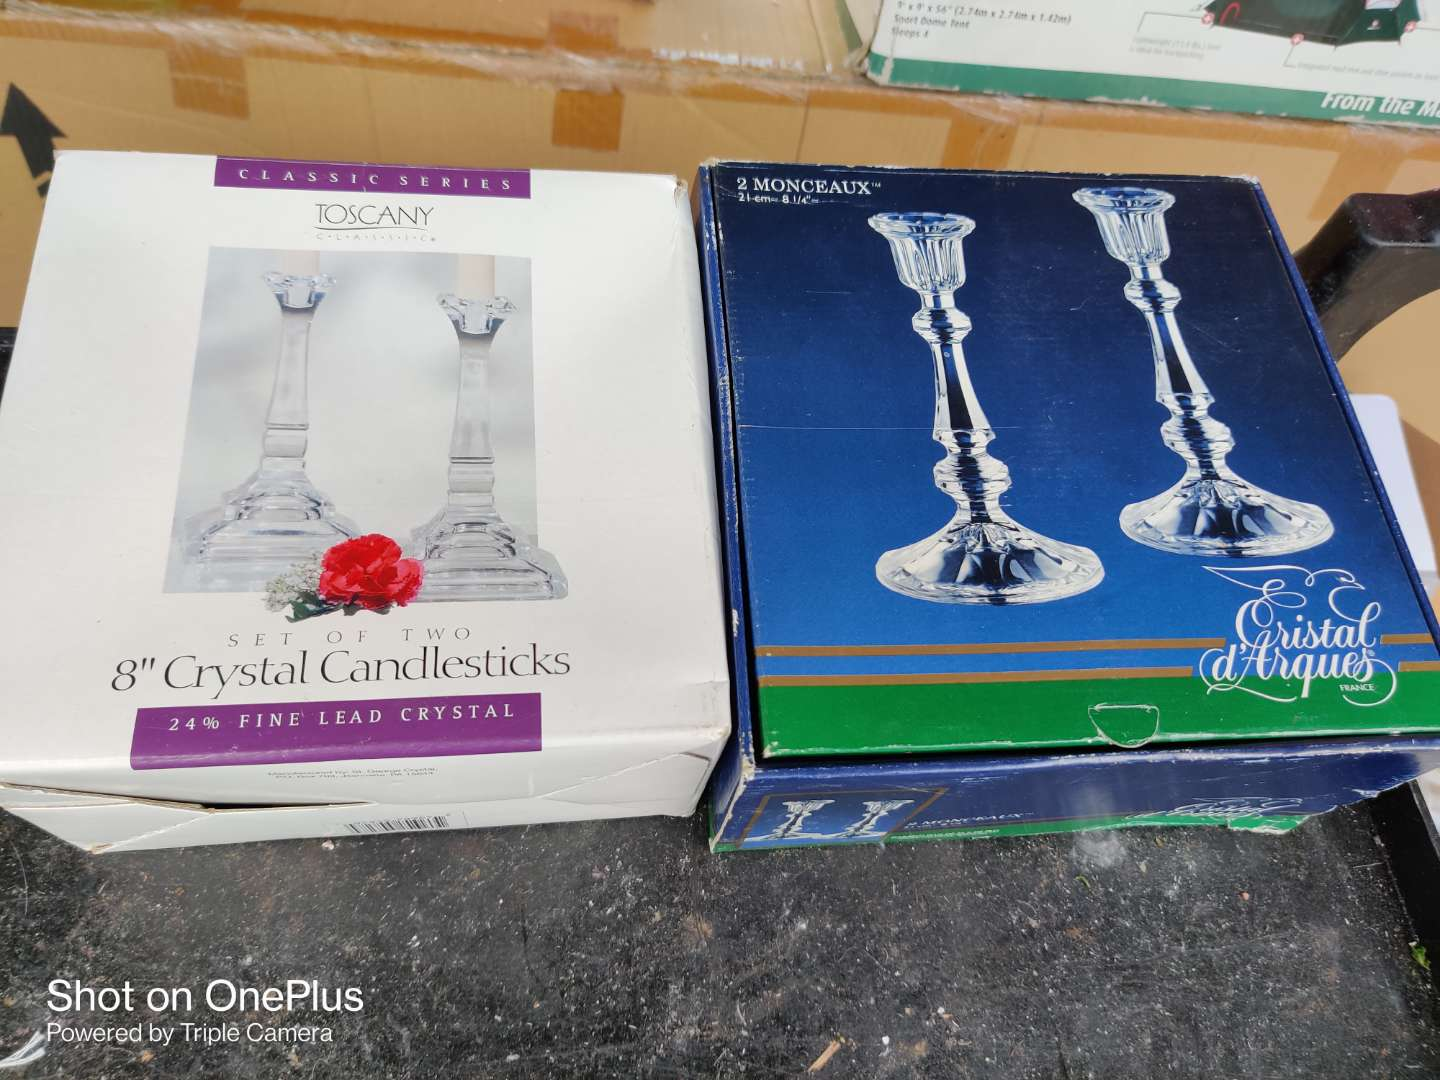 601 two pair of crystal candle holders in the boxes